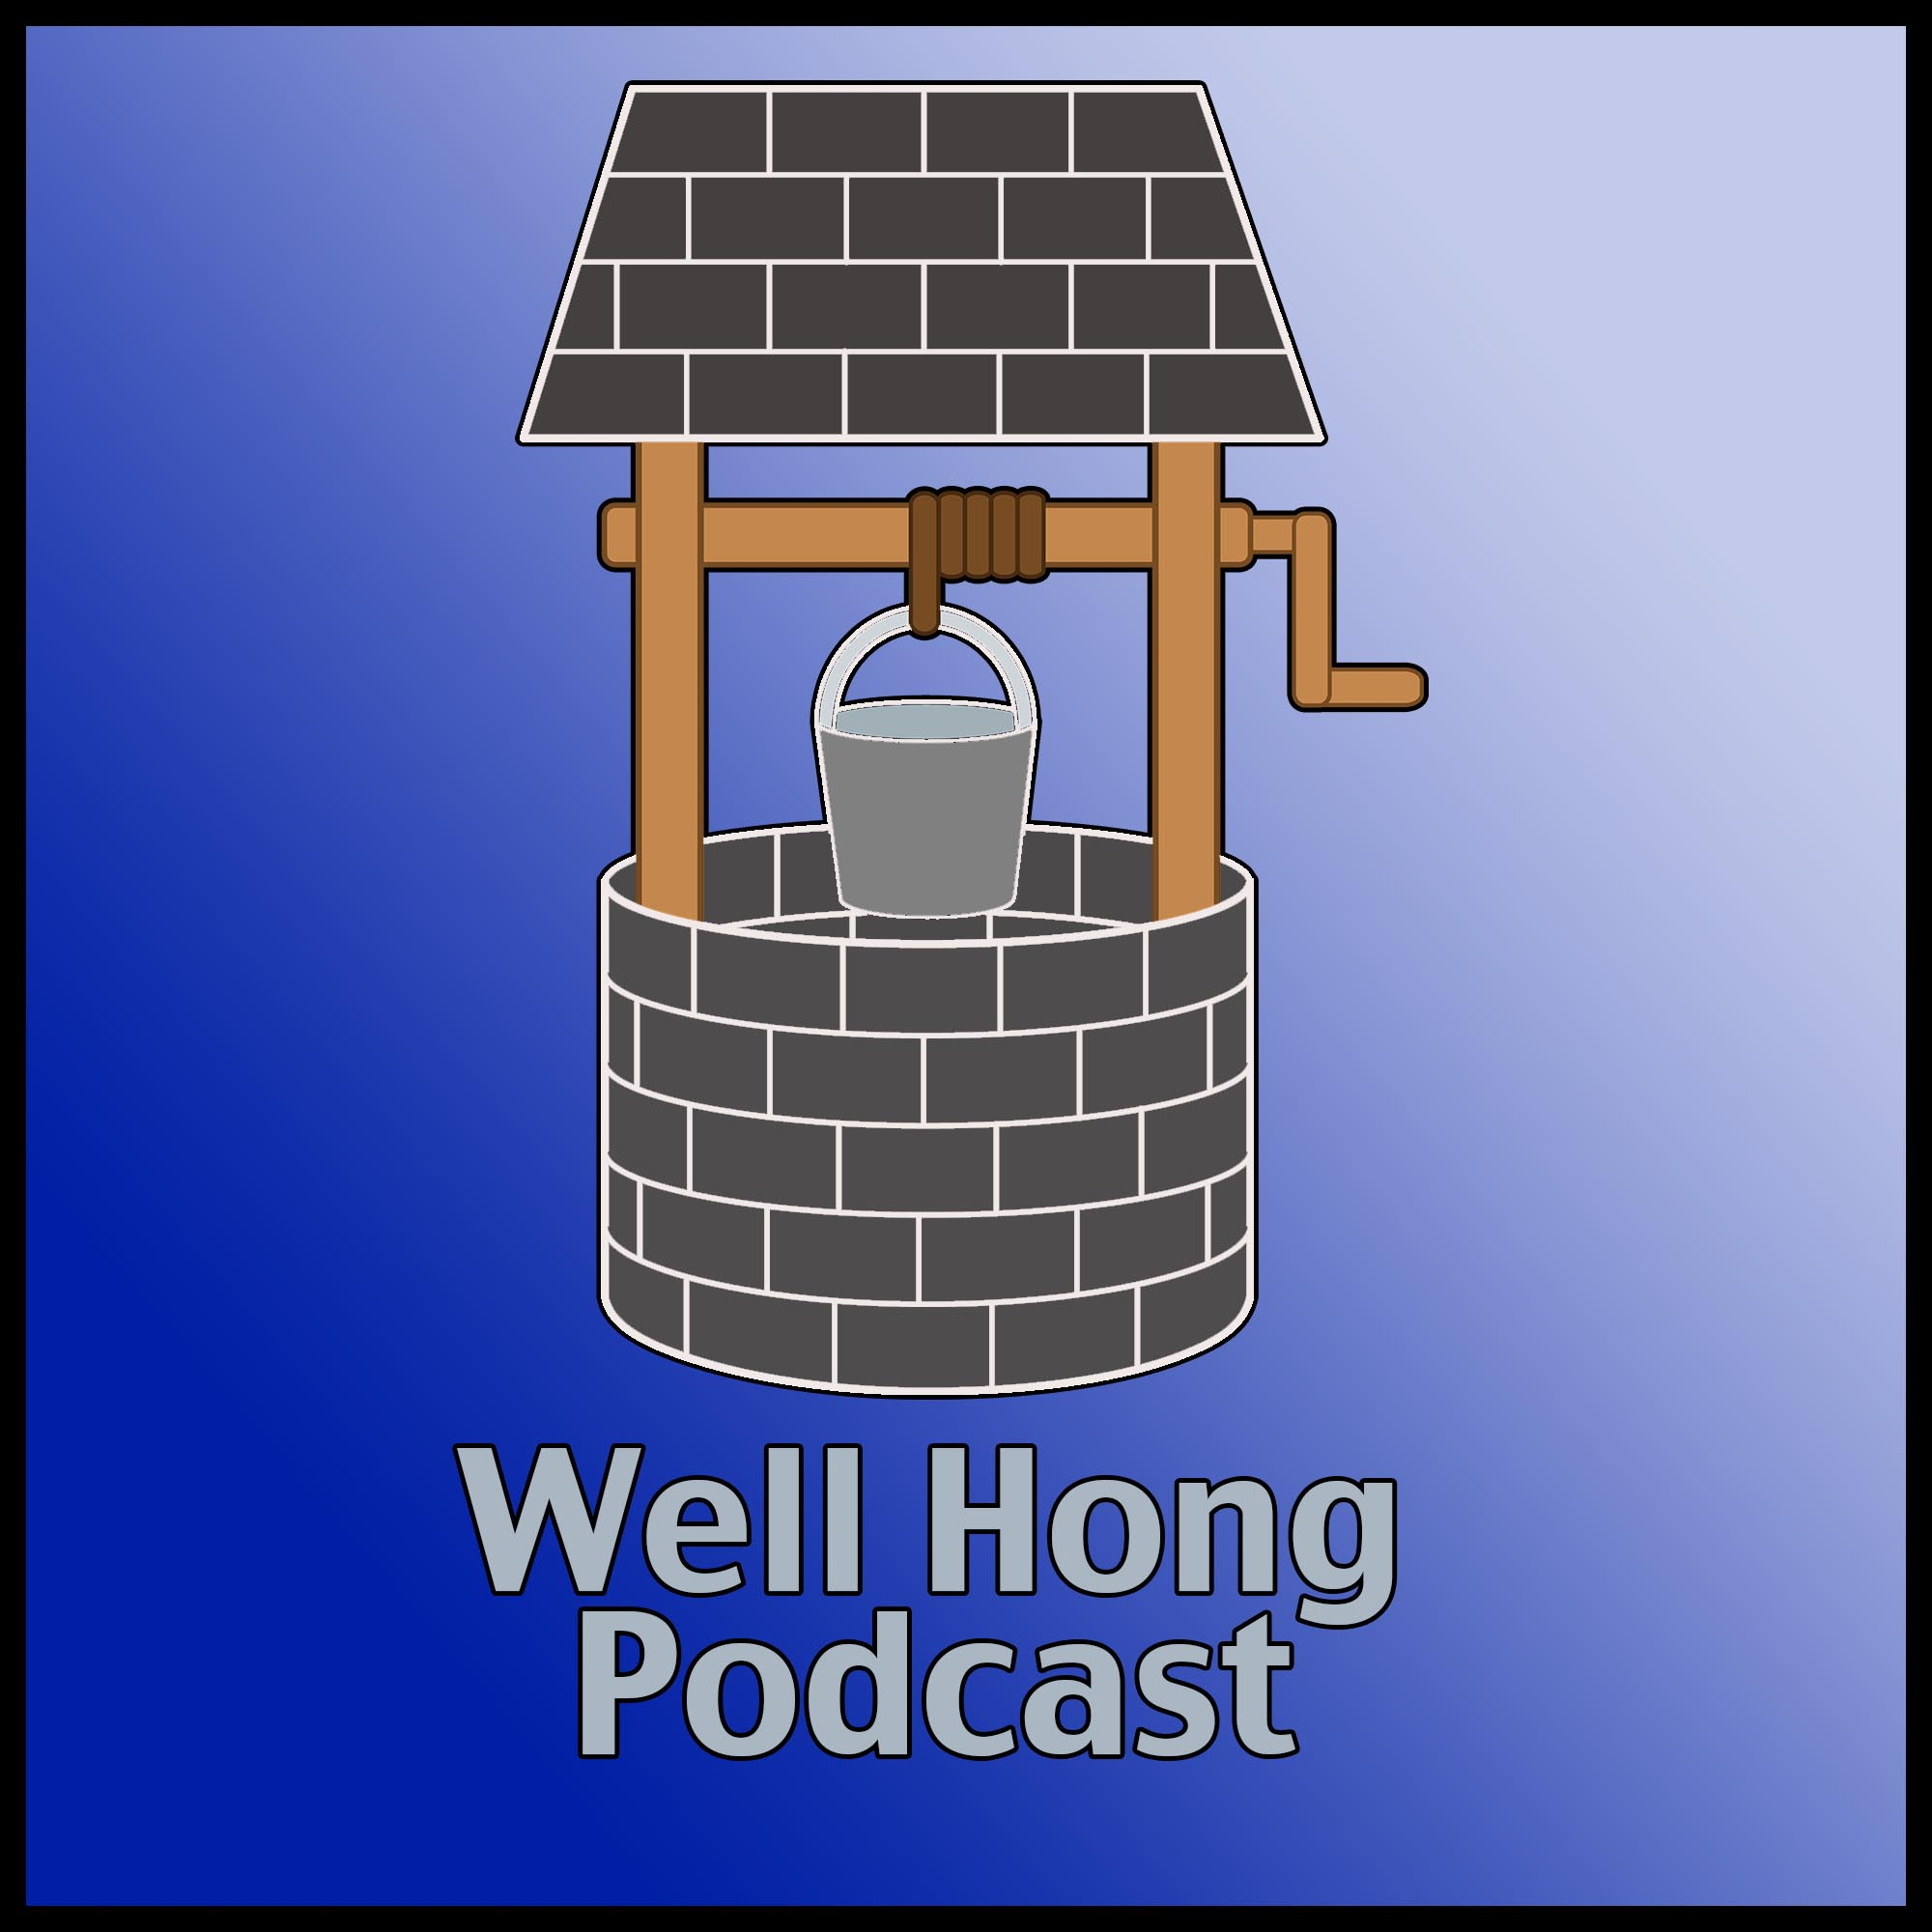 Well Hong Podcast – natedarlingshow.com